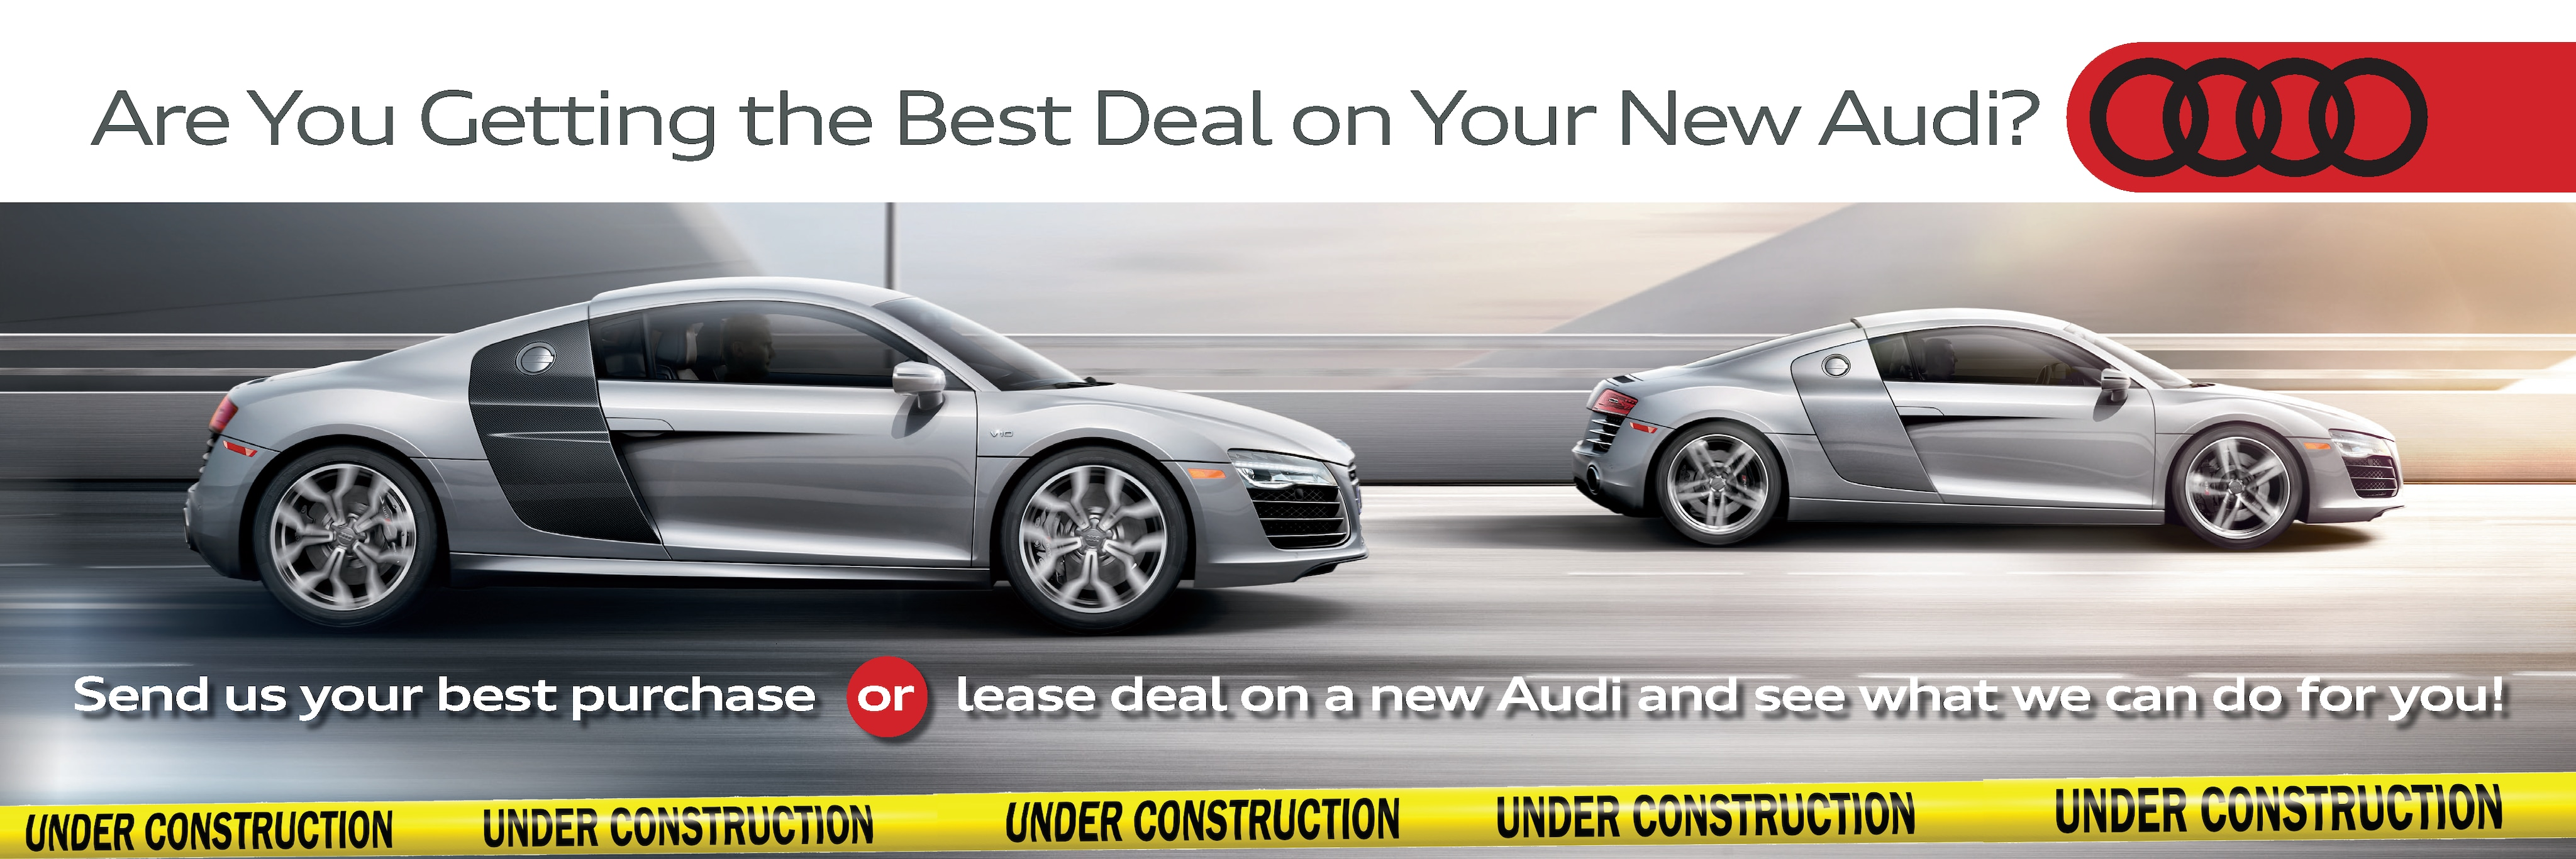 coeur htm audi auto new sale for creve near bl leases in st mo louis